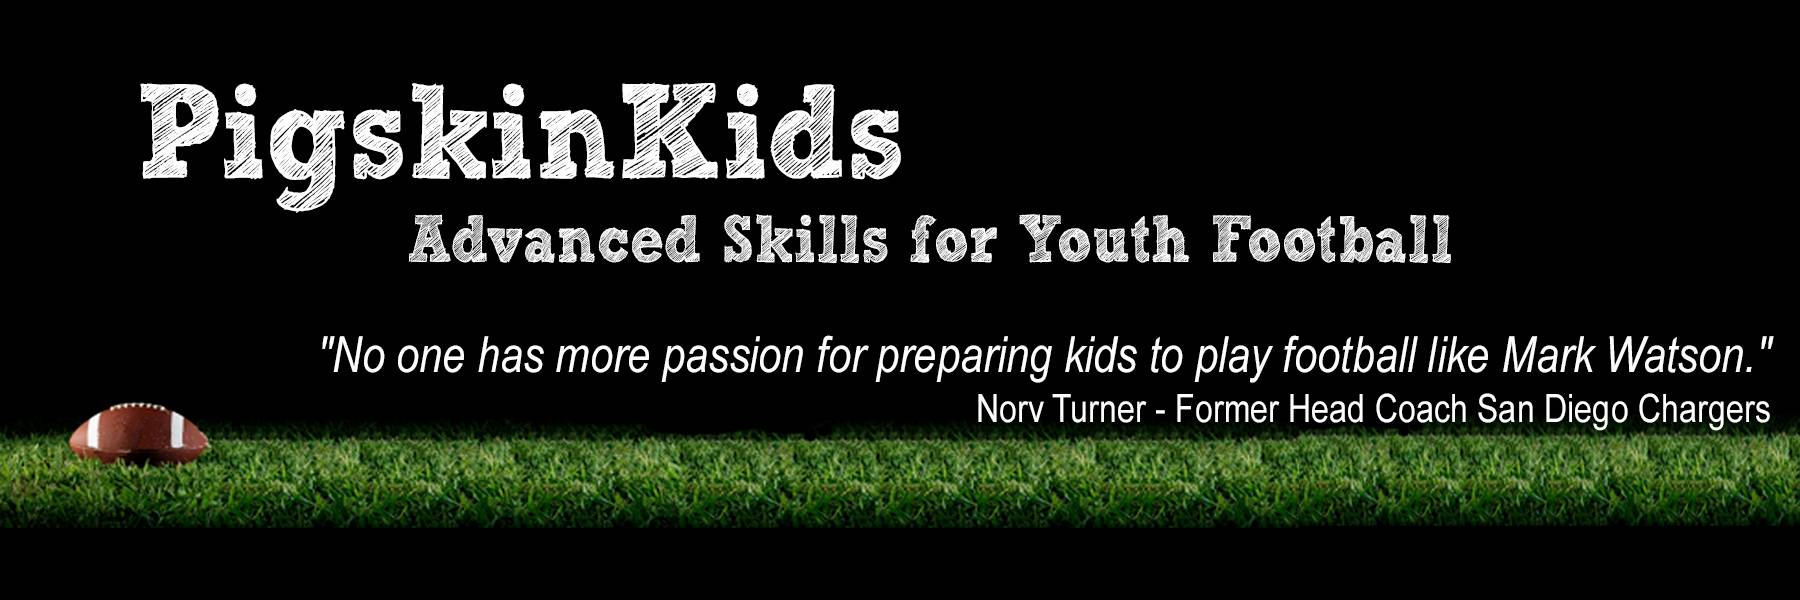 Pigskinkids Com Advanced Skills For Youth Football